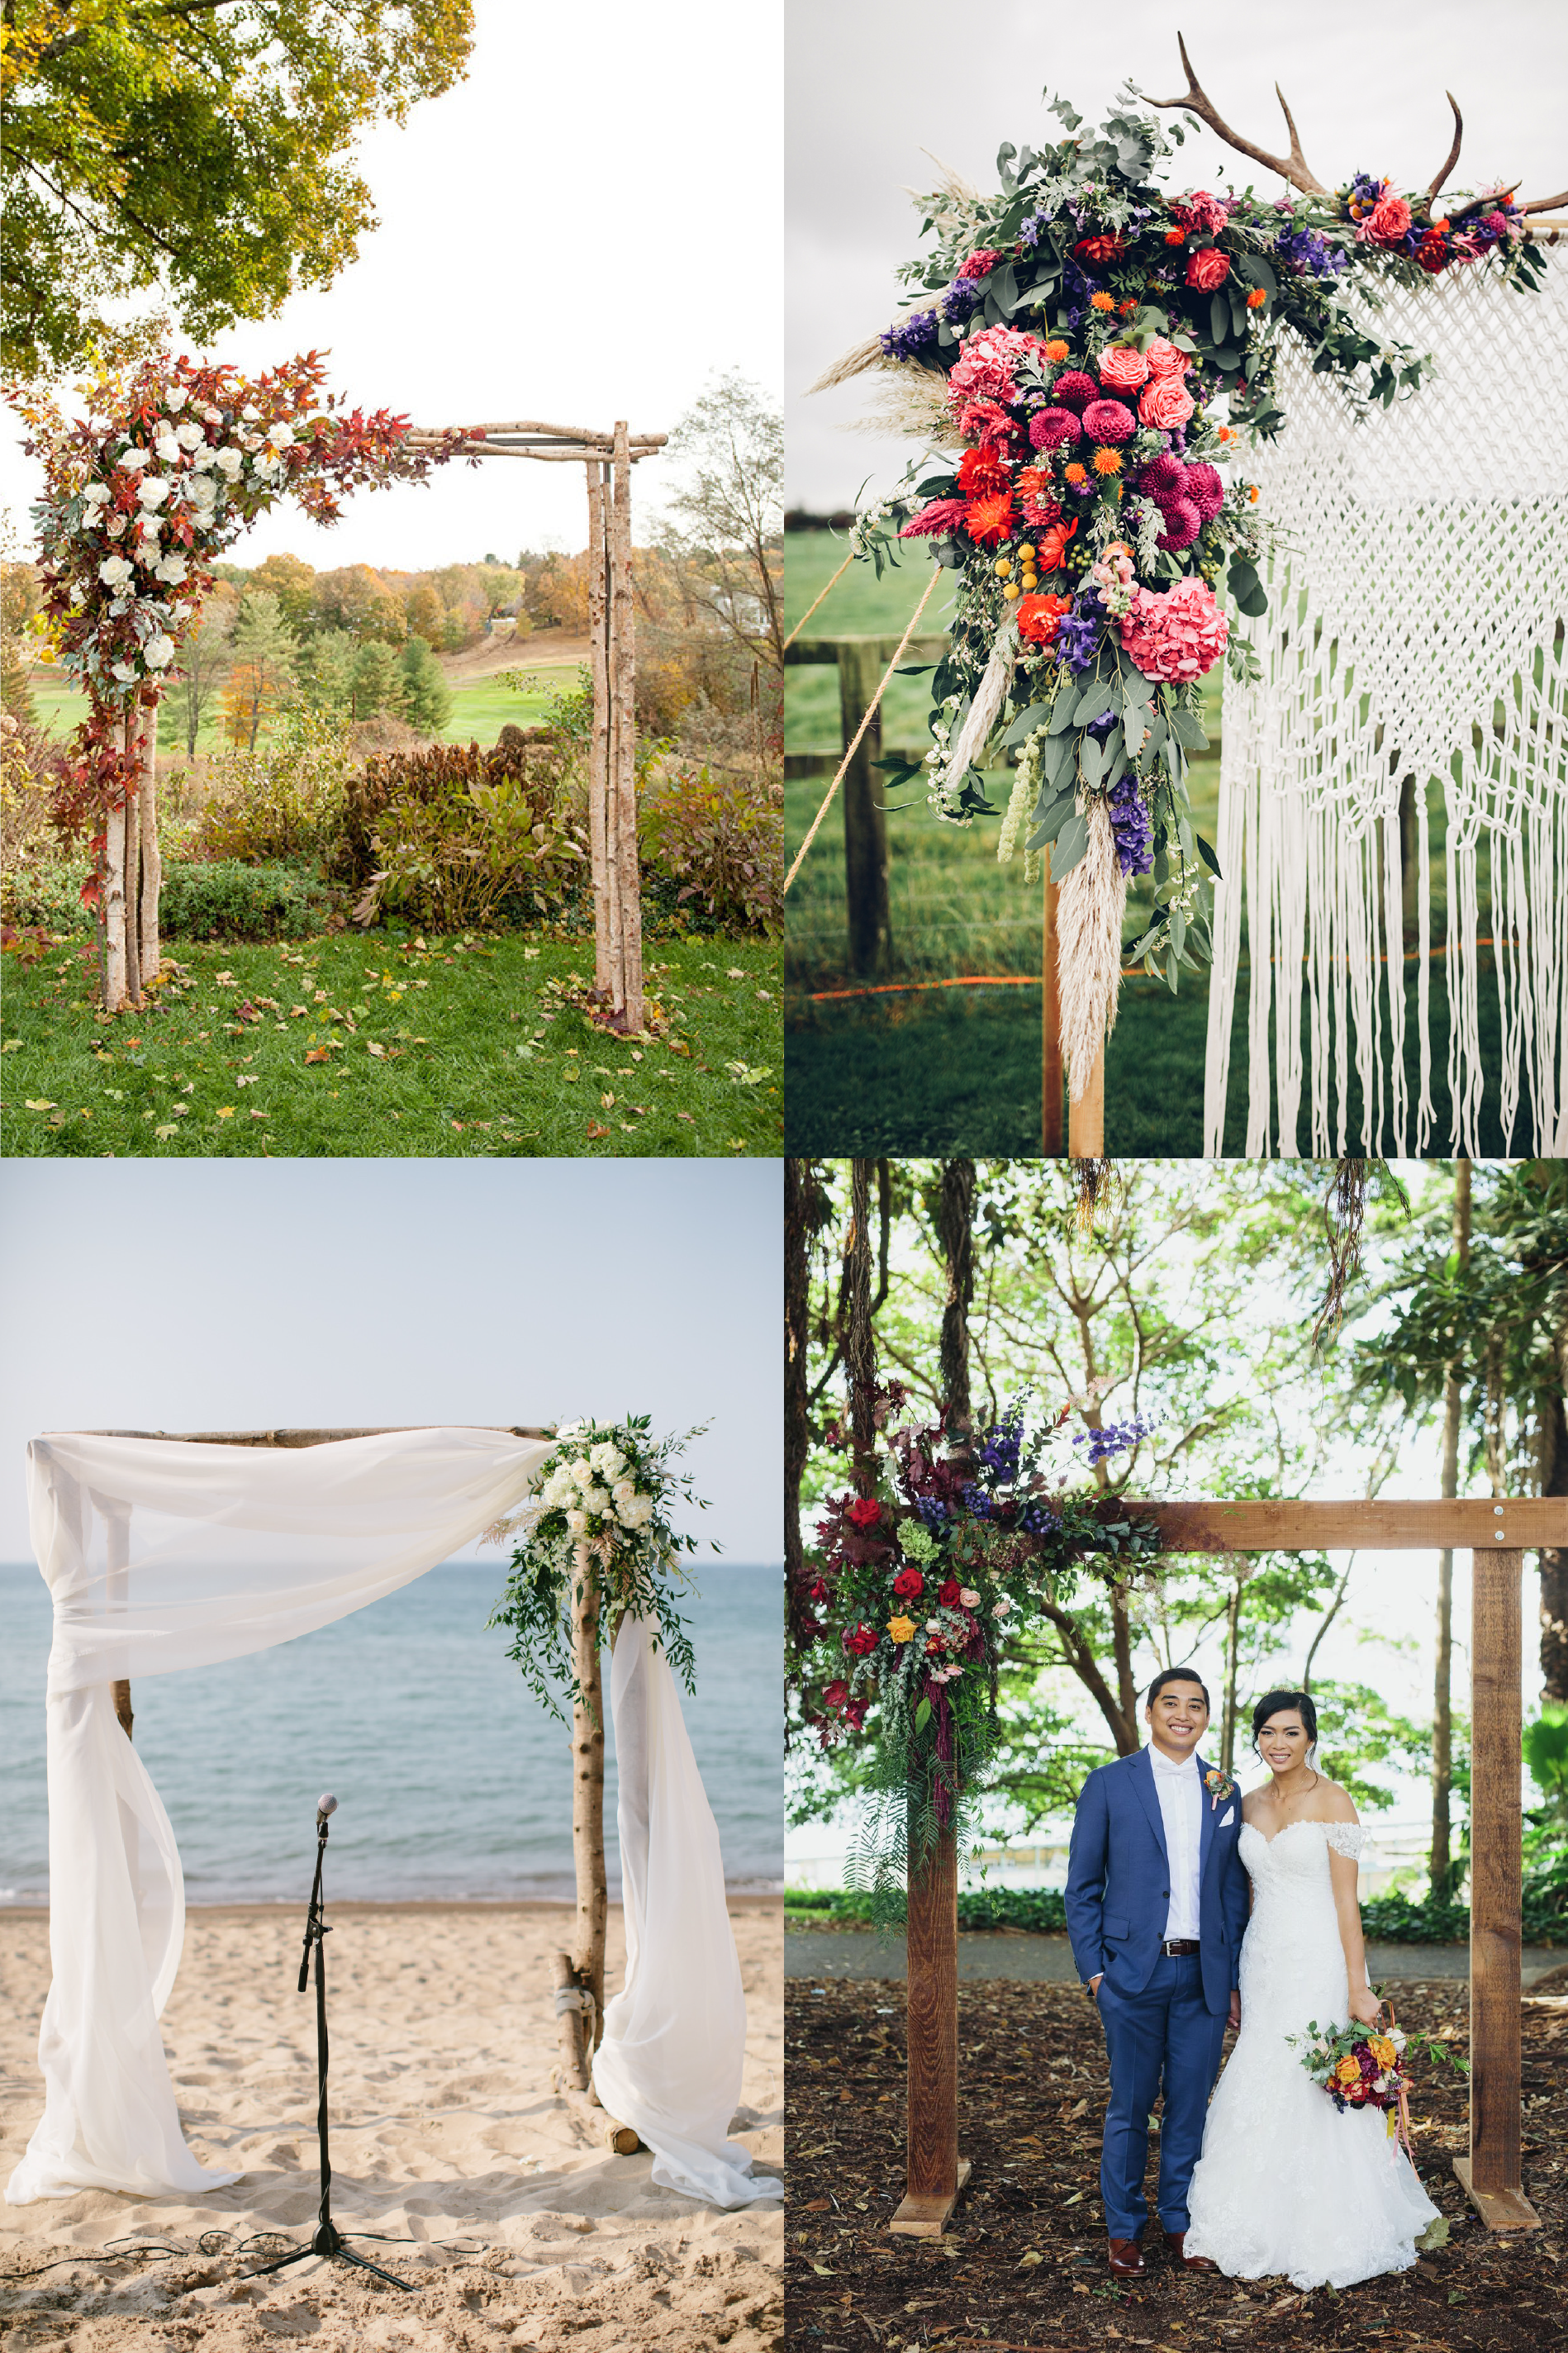 FROM CLOCKWISE, FROM TOP LEFT: Photo by  Mikkel Paige   ,   Floral Design by  Swaffham and Fakenham Florists  and Photo by  Darina Stoda Photography , Flower Design by  Lime Tree Bower  and photo by  jack chauvel , Flower Design by   Stella Event Design  and Photo by  Katie Kett Photography .